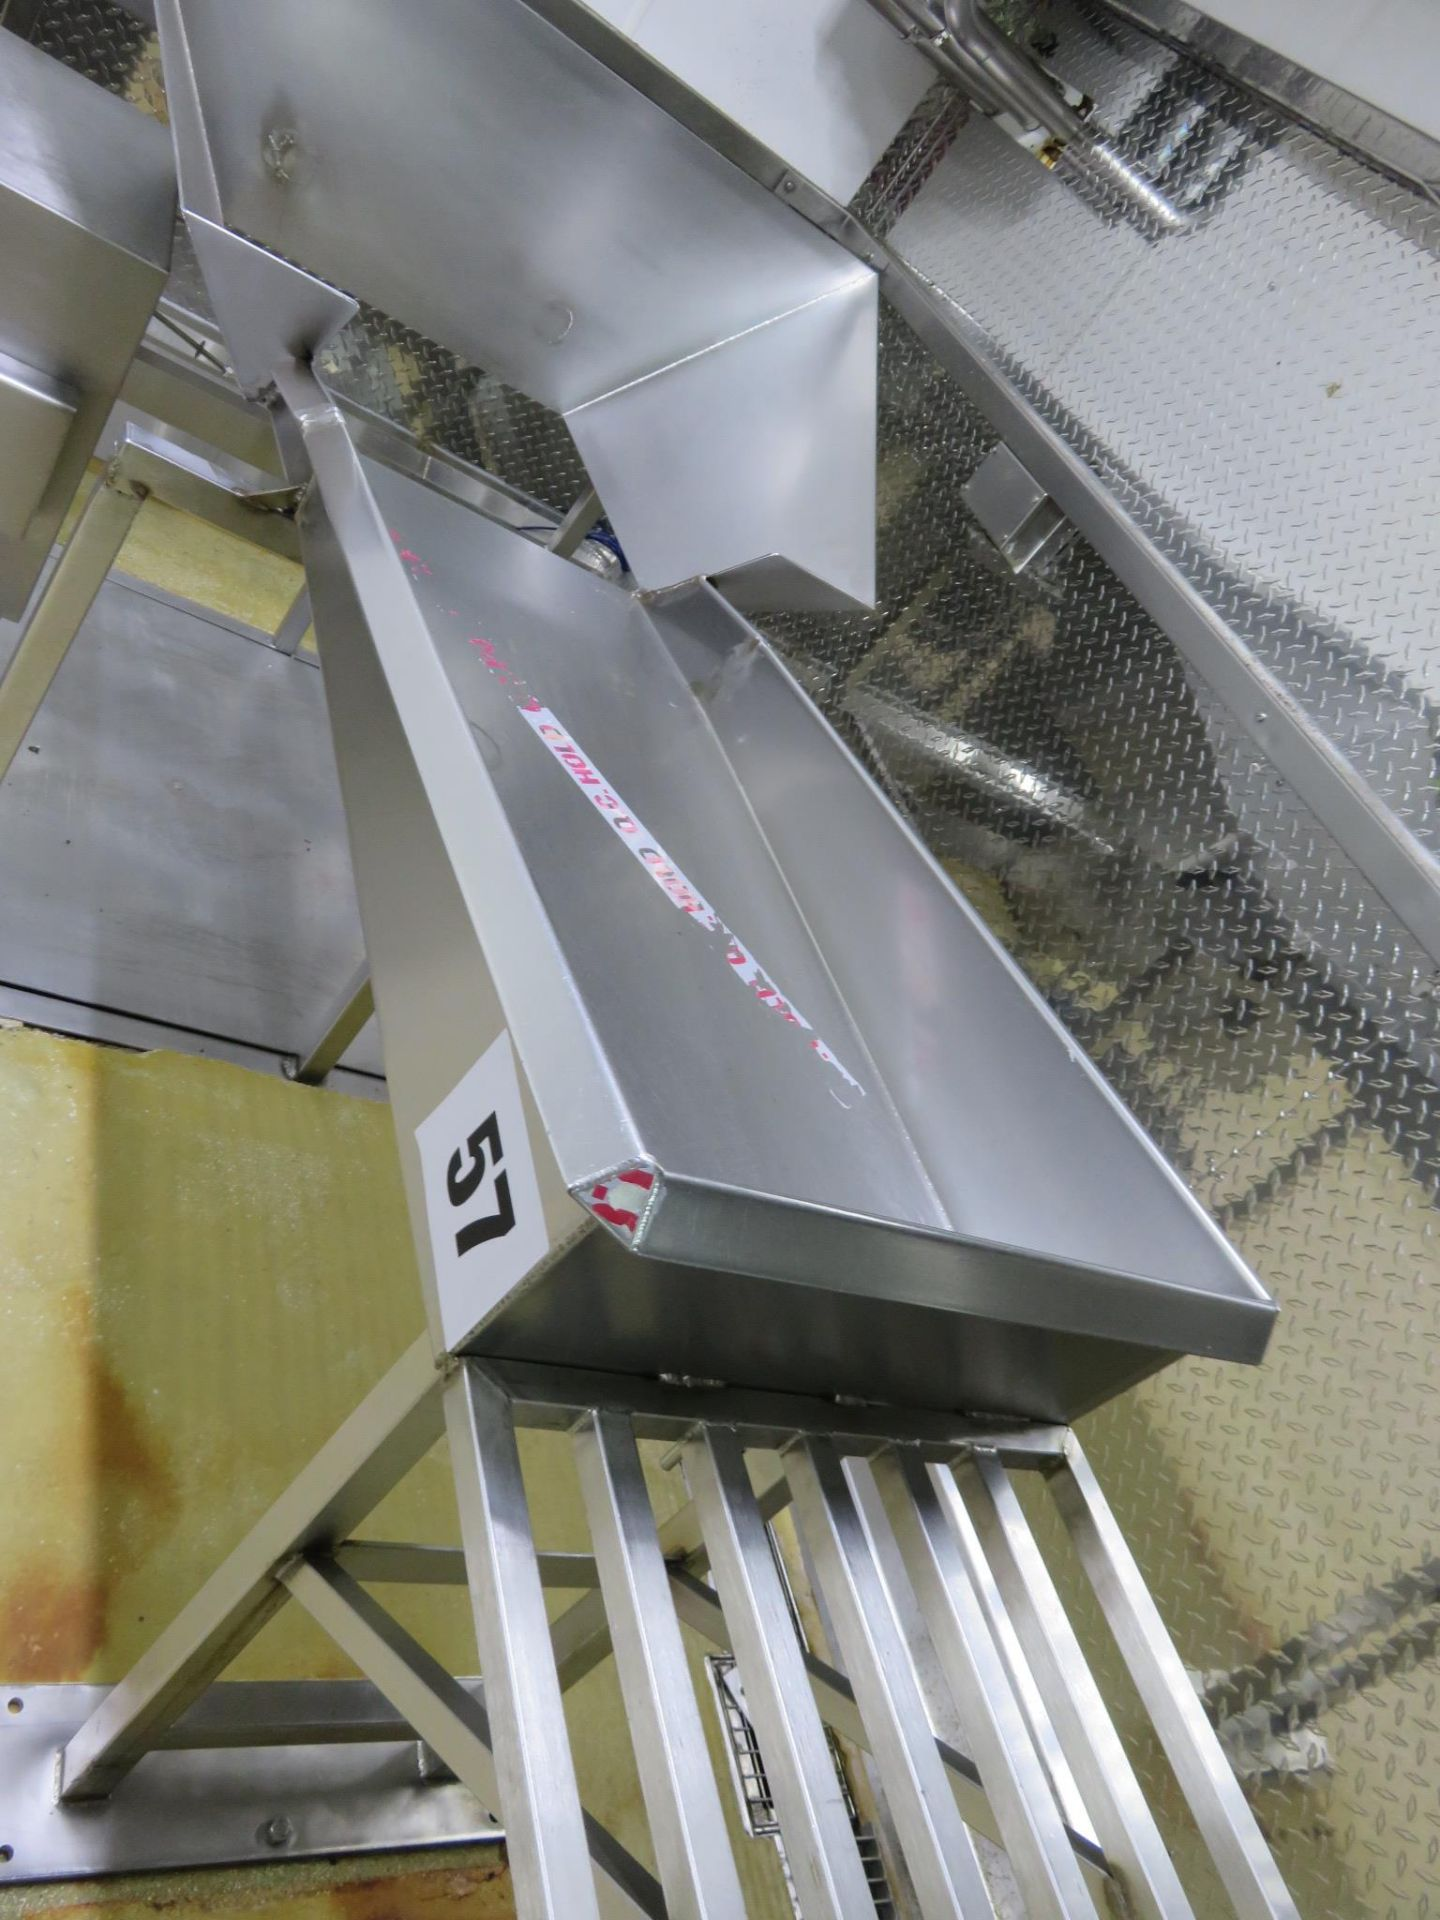 Lot 57 - S/s Sorting Table 2200 mm x 1100 mm. Lift out £30